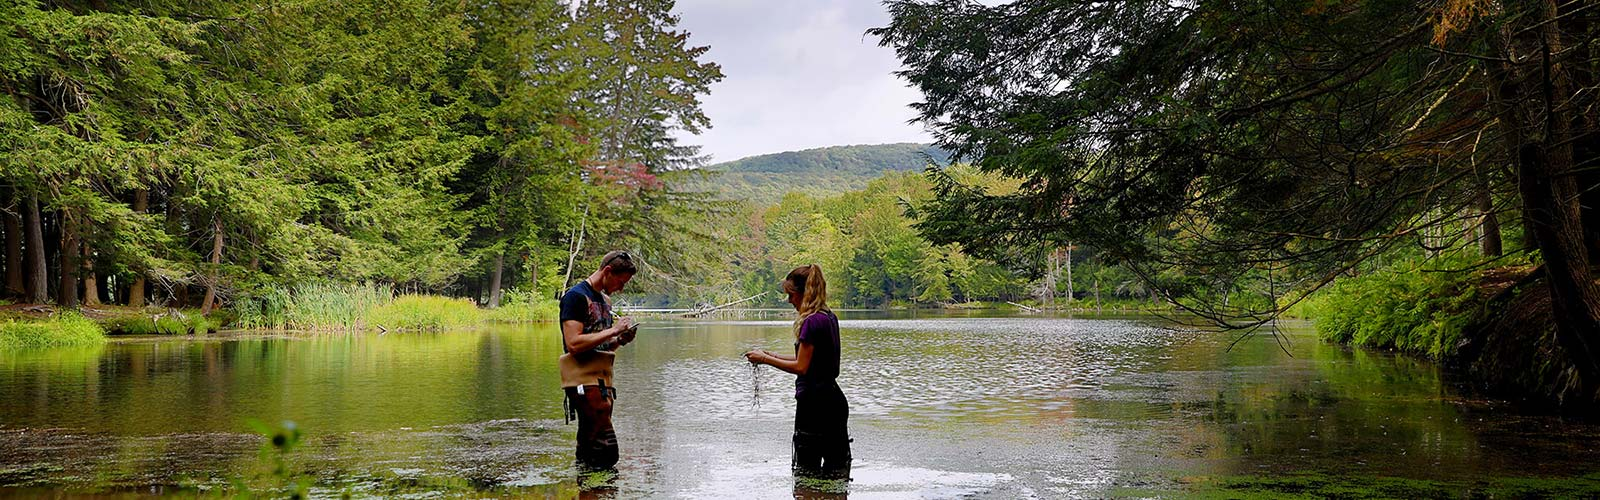 Students in lake gathering water samples